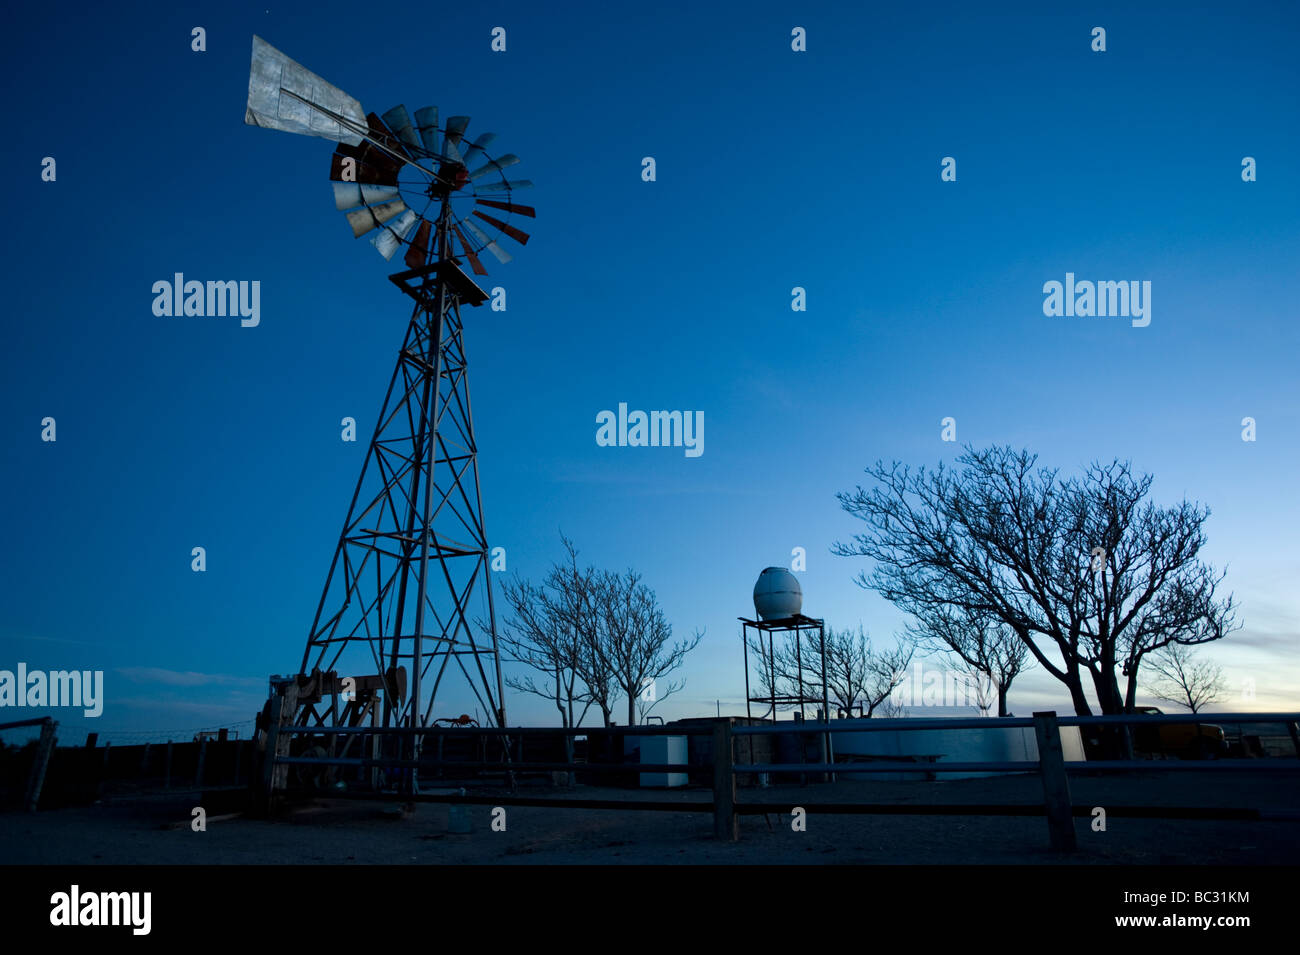 A windmill pumps water to livestock on a Mexican ranch in Chihuahua. - Stock Image